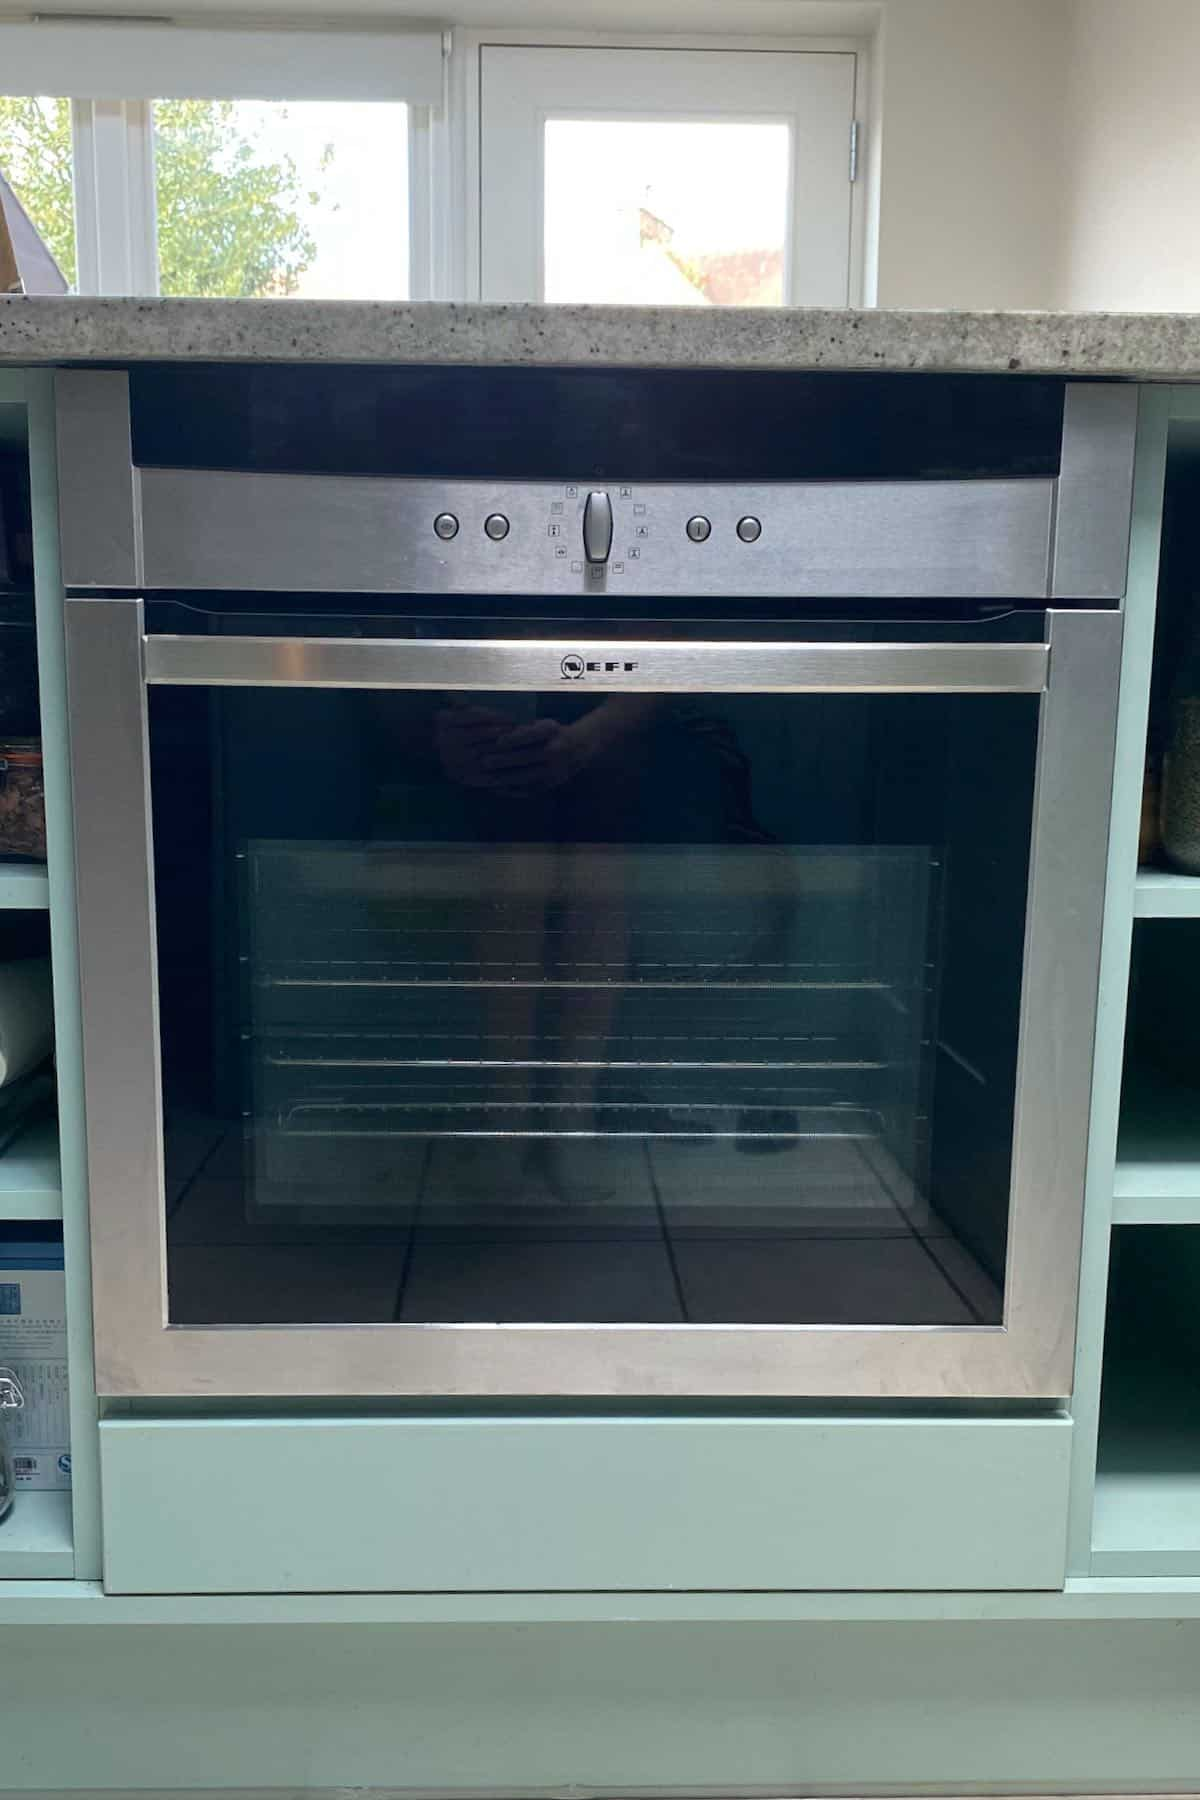 Oven with a closed door